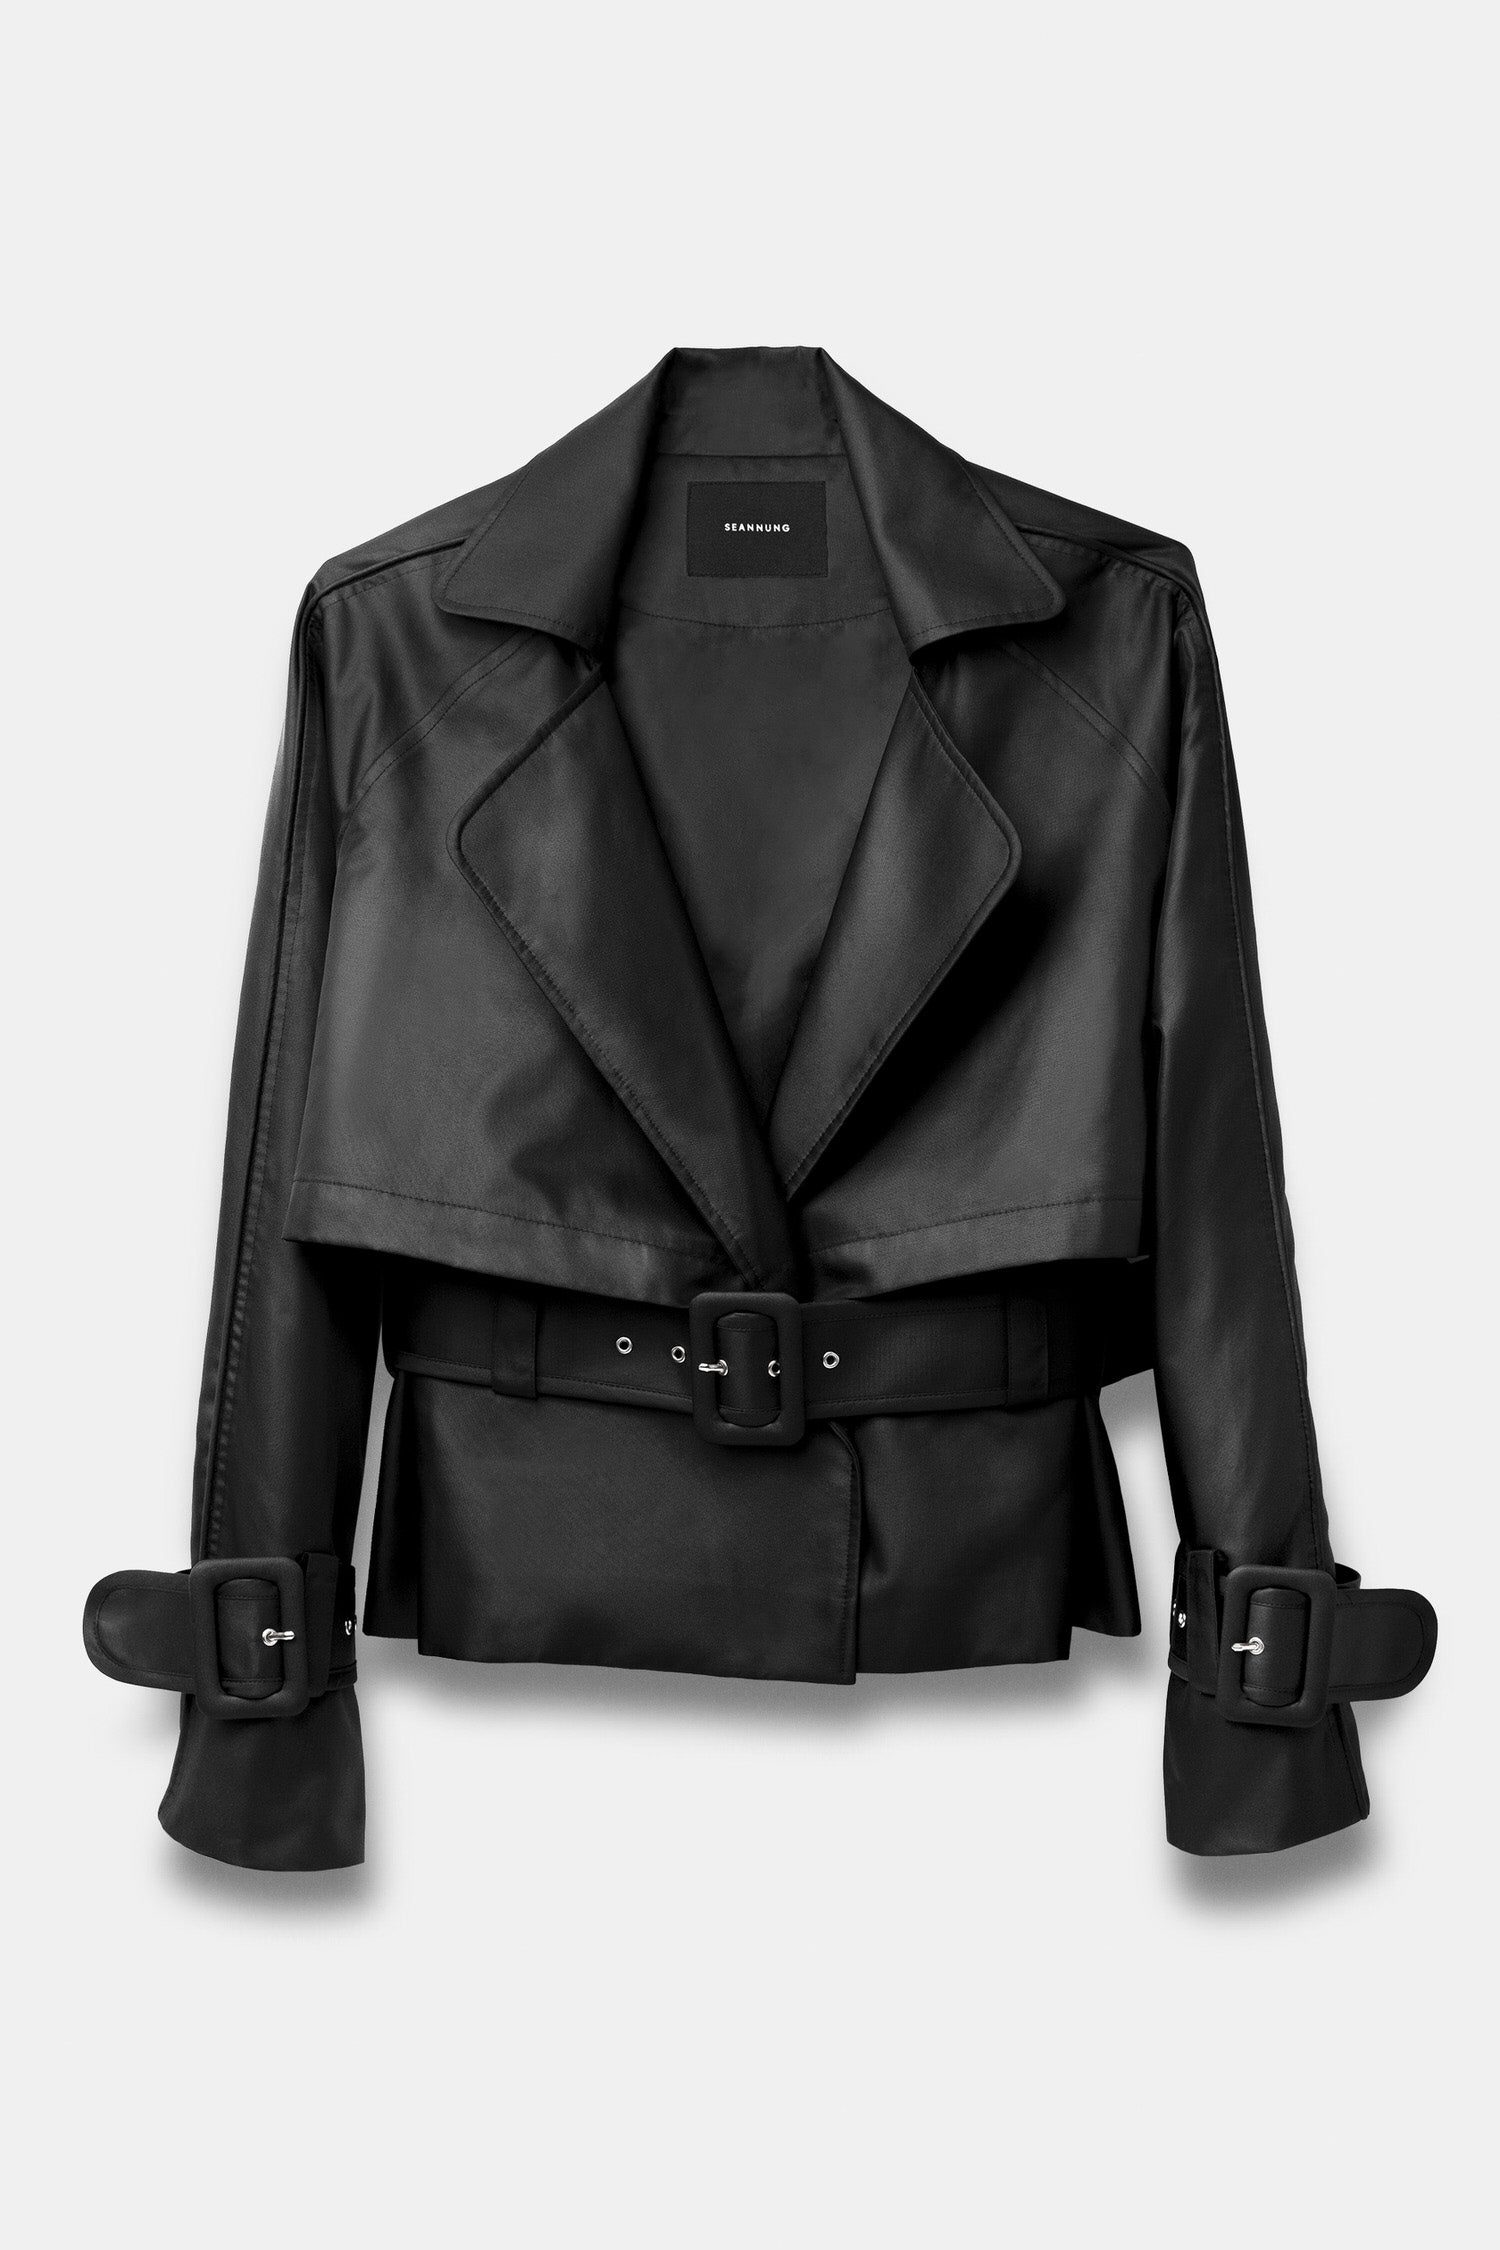 SEANNUNG - 黑色短版雙層綁帶風衣 Double Layered Blazer with Belt in Black - Woman